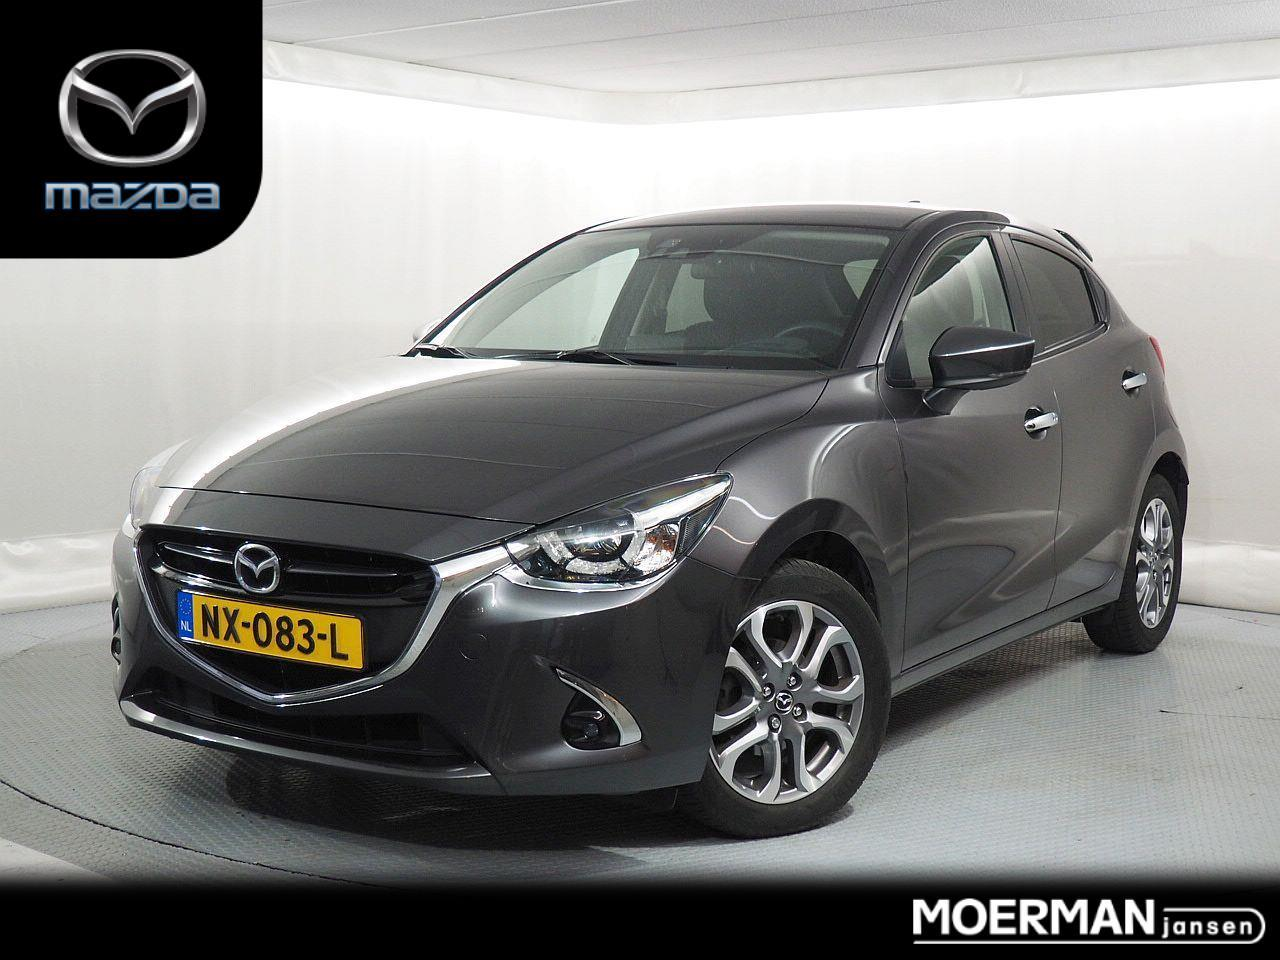 Mazda 2 1.5 gt-luxury / leder-alcantara / camera / head-up display / keyless entry / navigatie / apple carplay